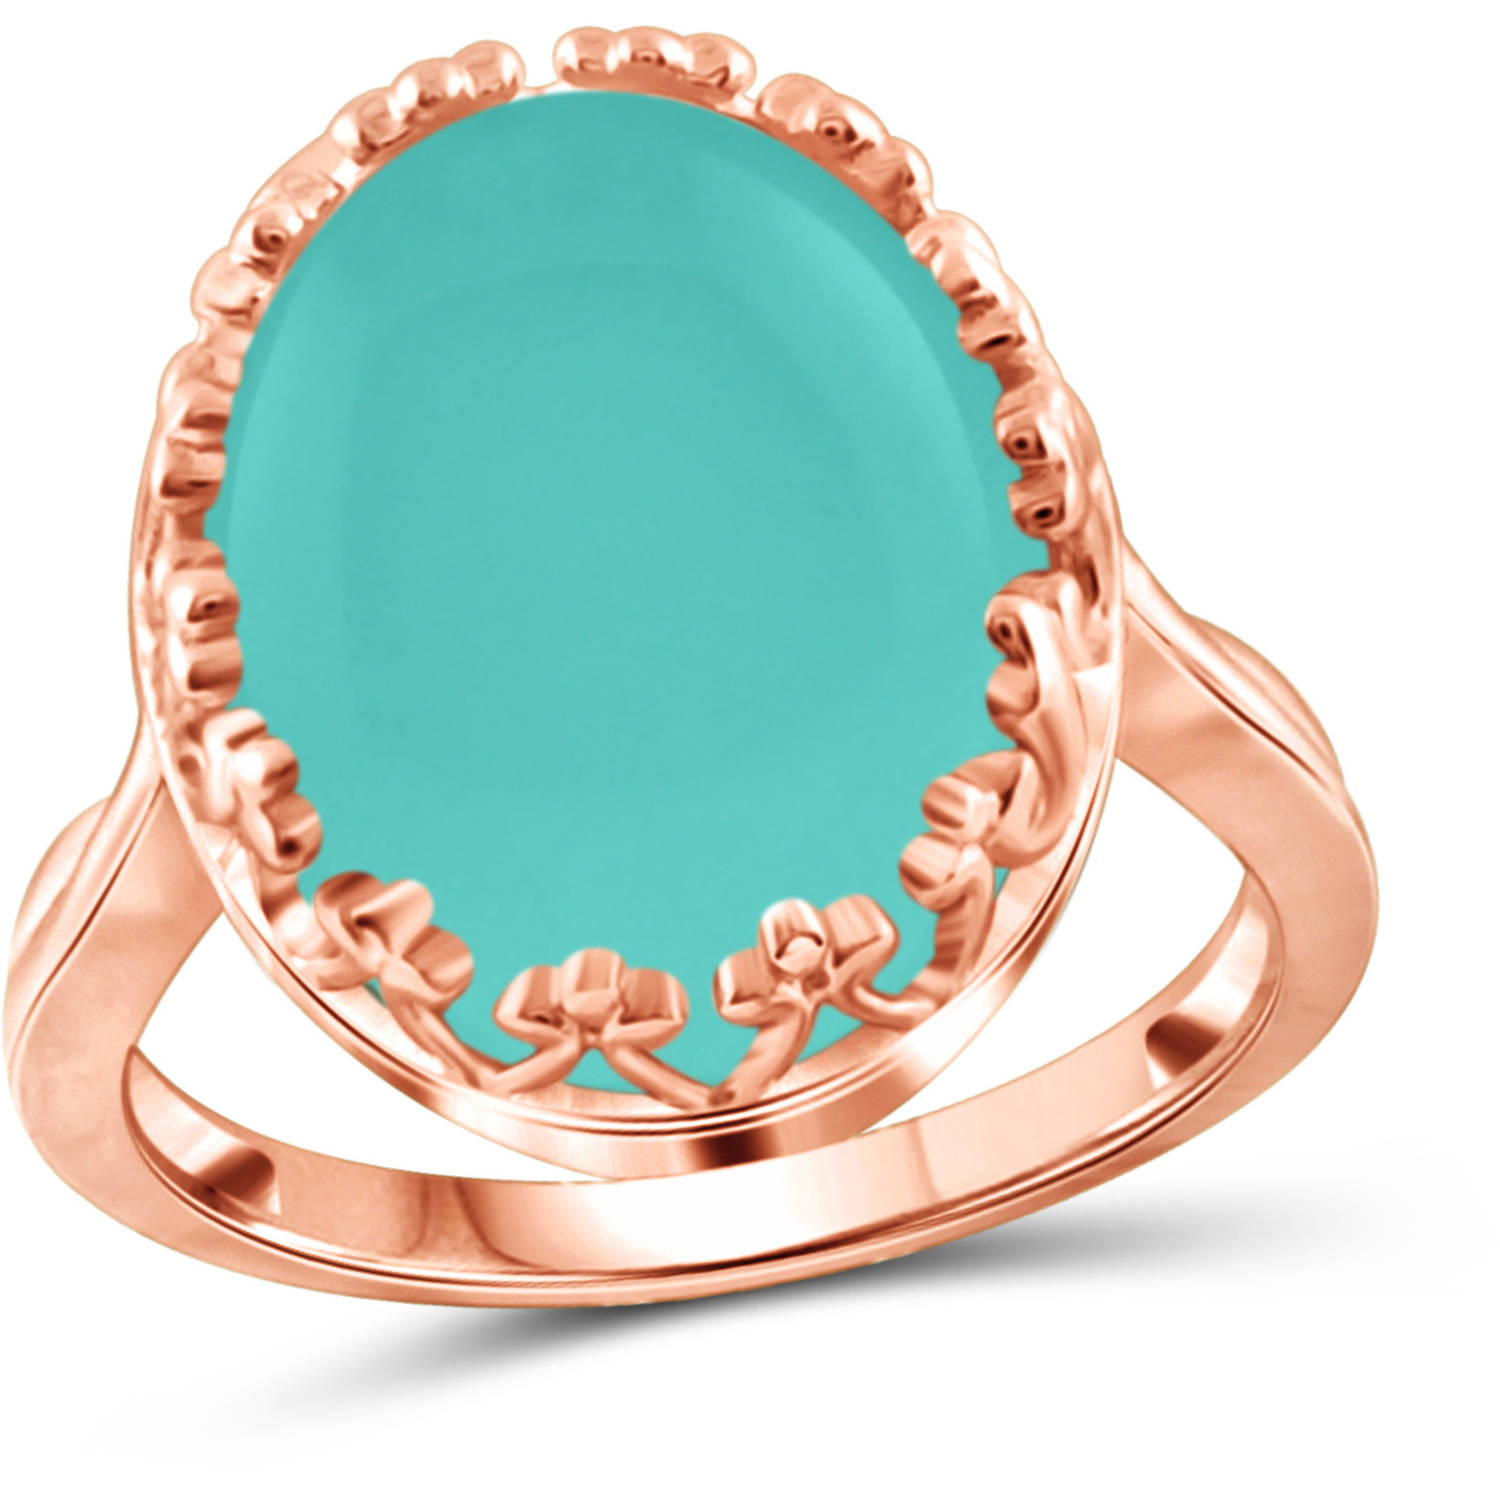 JewelersClub 9-3 4 Carat T.G.W. Chalcedony Rose Gold over Silver Fashion Ring by JewelersClub